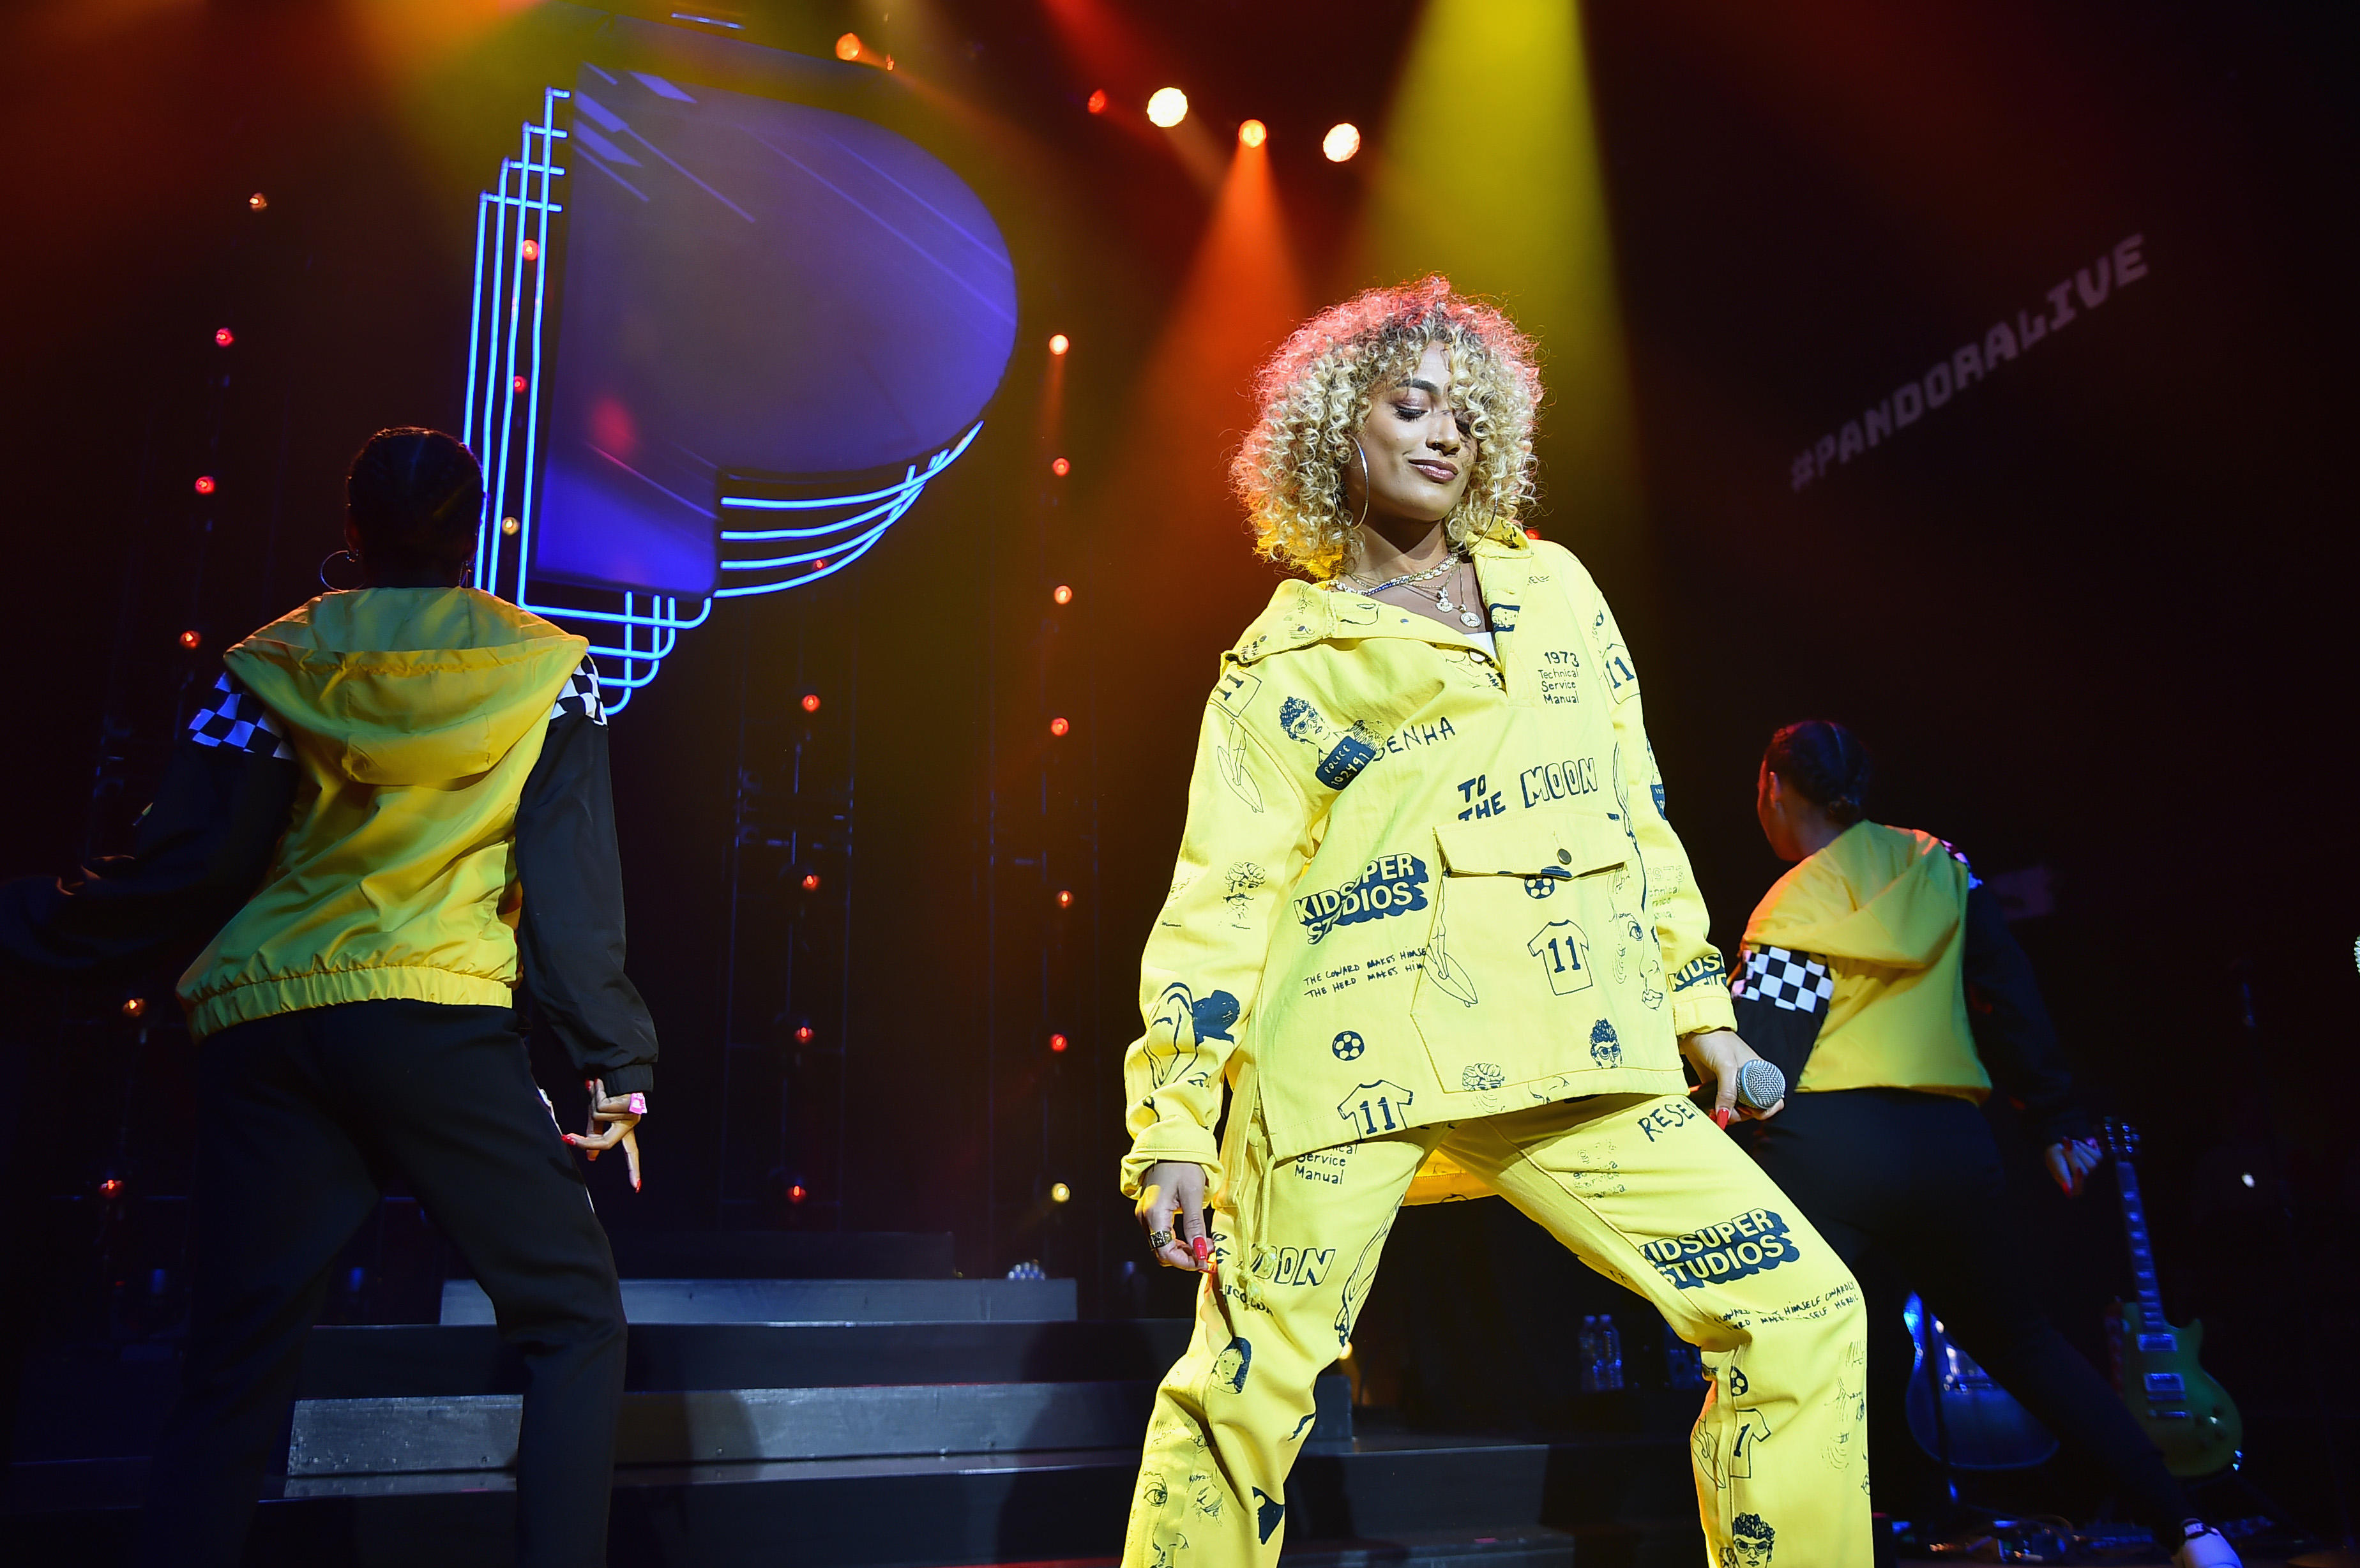 DaniLeigh performs in a yellow graphic outfit in front of a Pandora P logo.